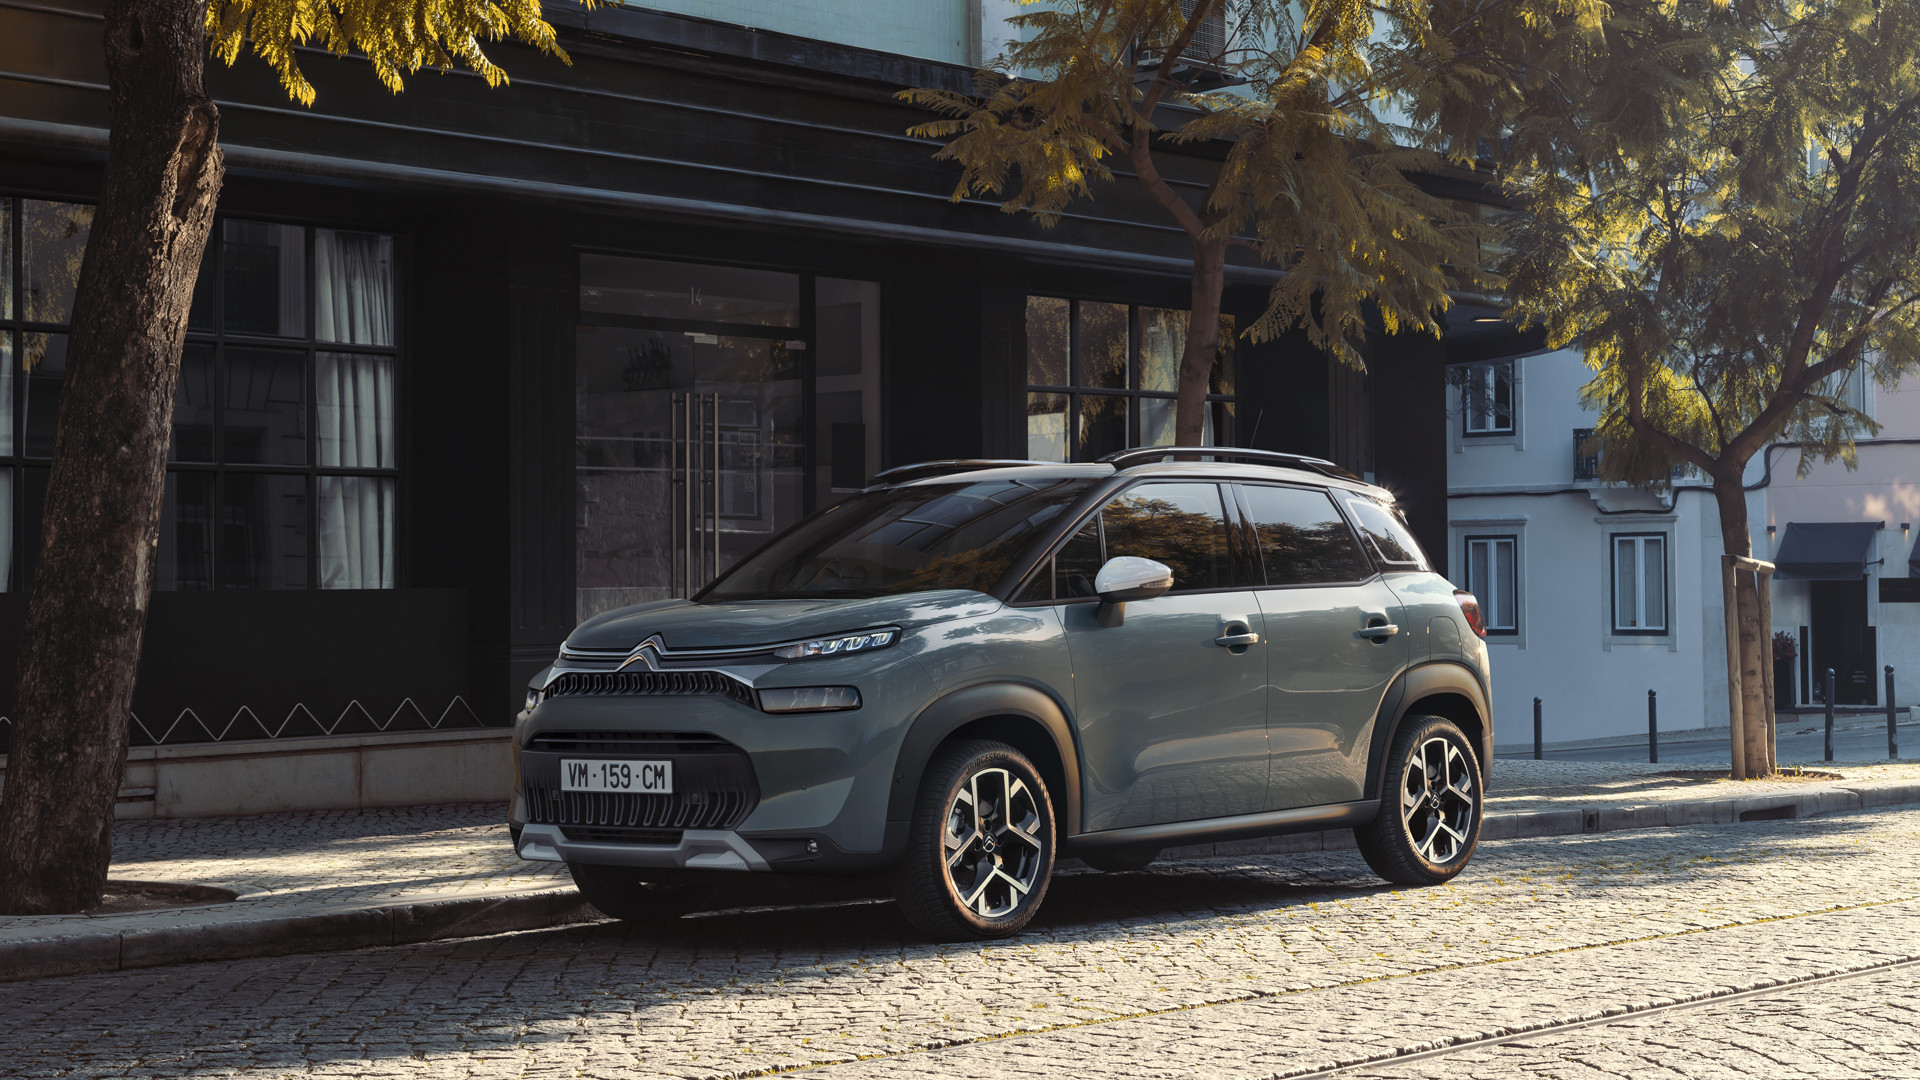 New Citroën C3 Aircross SUV arrives with an assertive new design and enhanced comfort